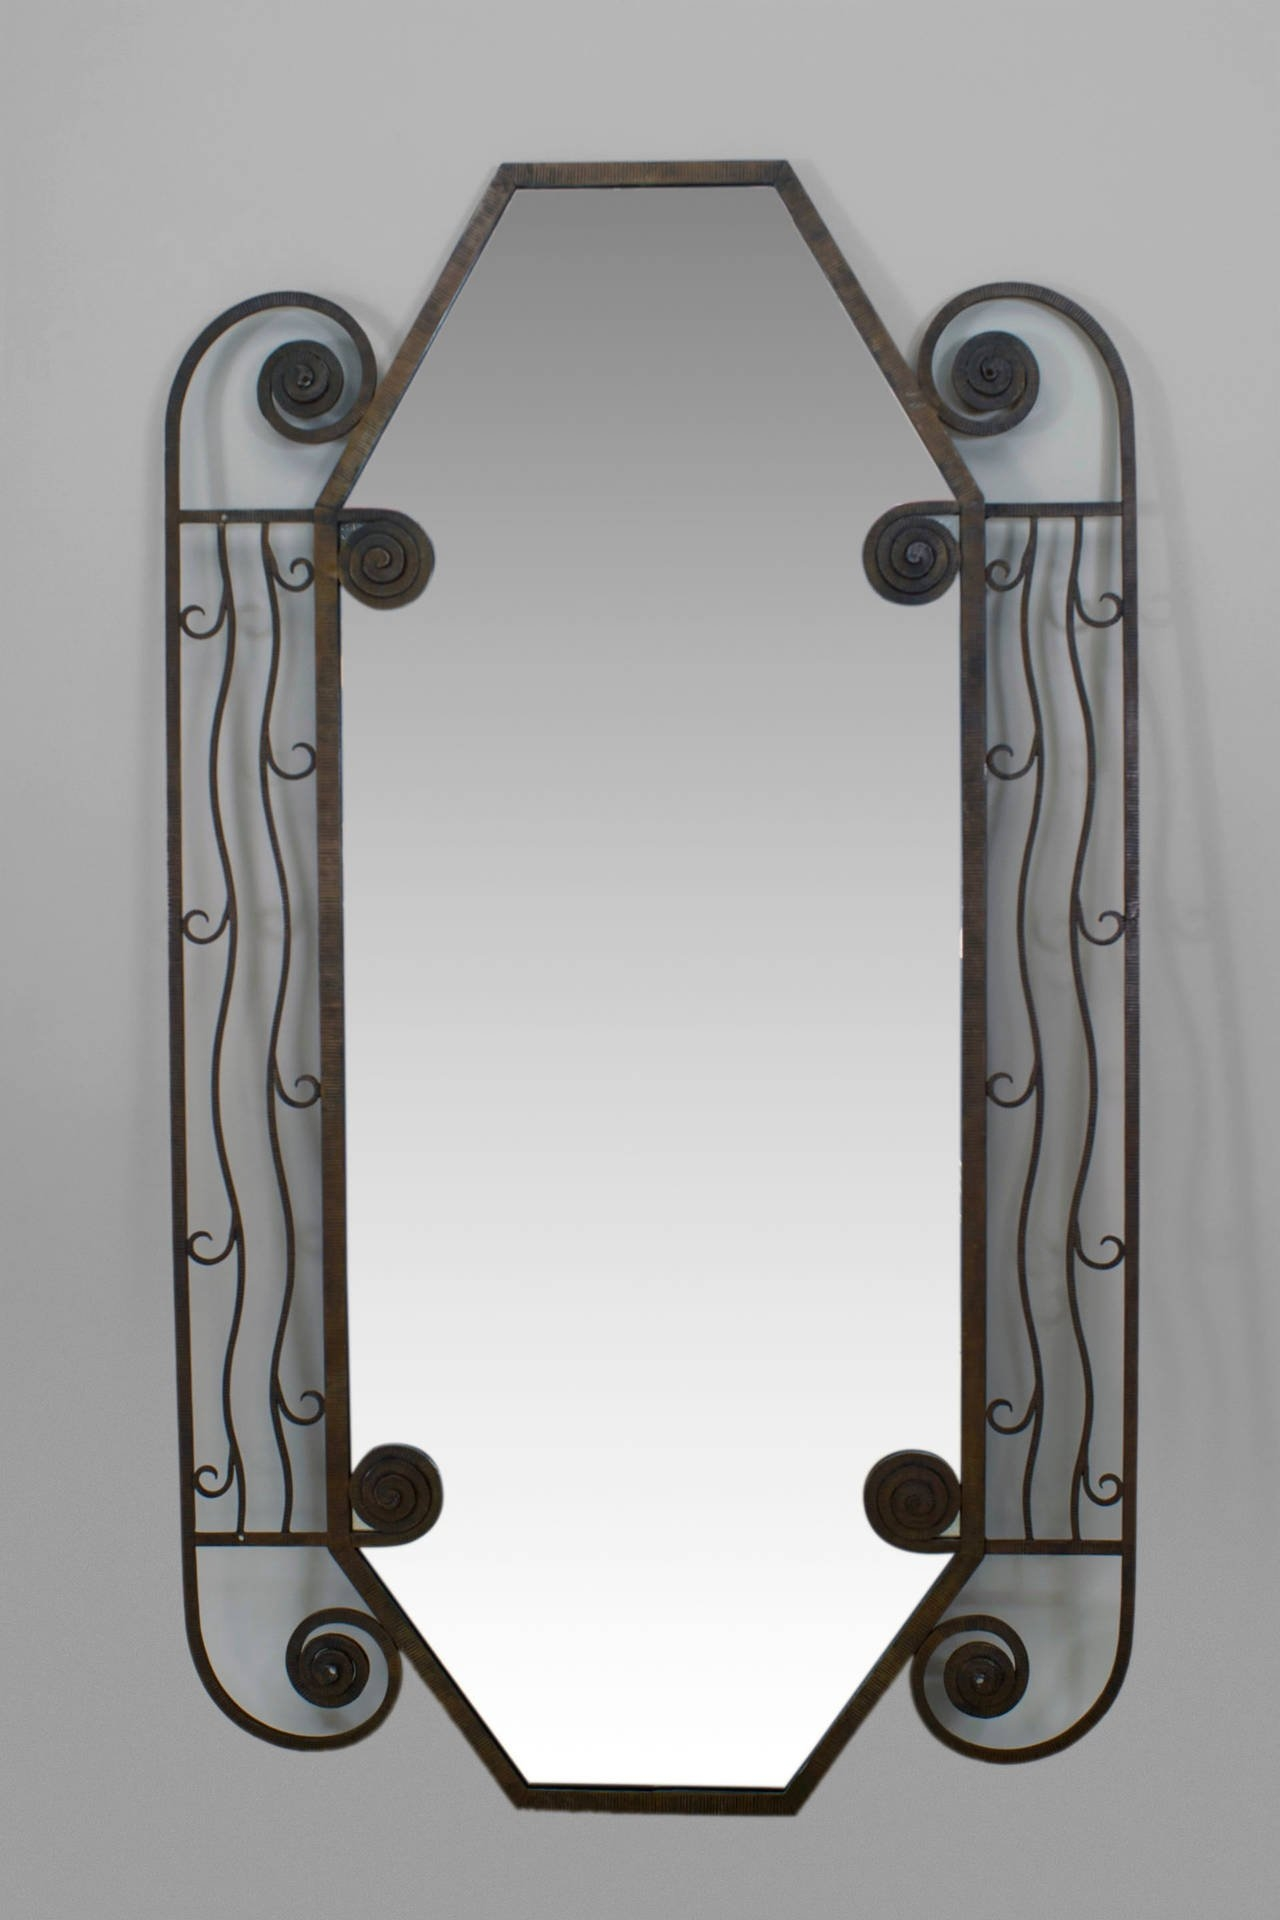 1930s French Art Deco Iron Wall Mirror For Sale At 1stdibs Within Wall Mirror Art Deco (Image 1 of 15)